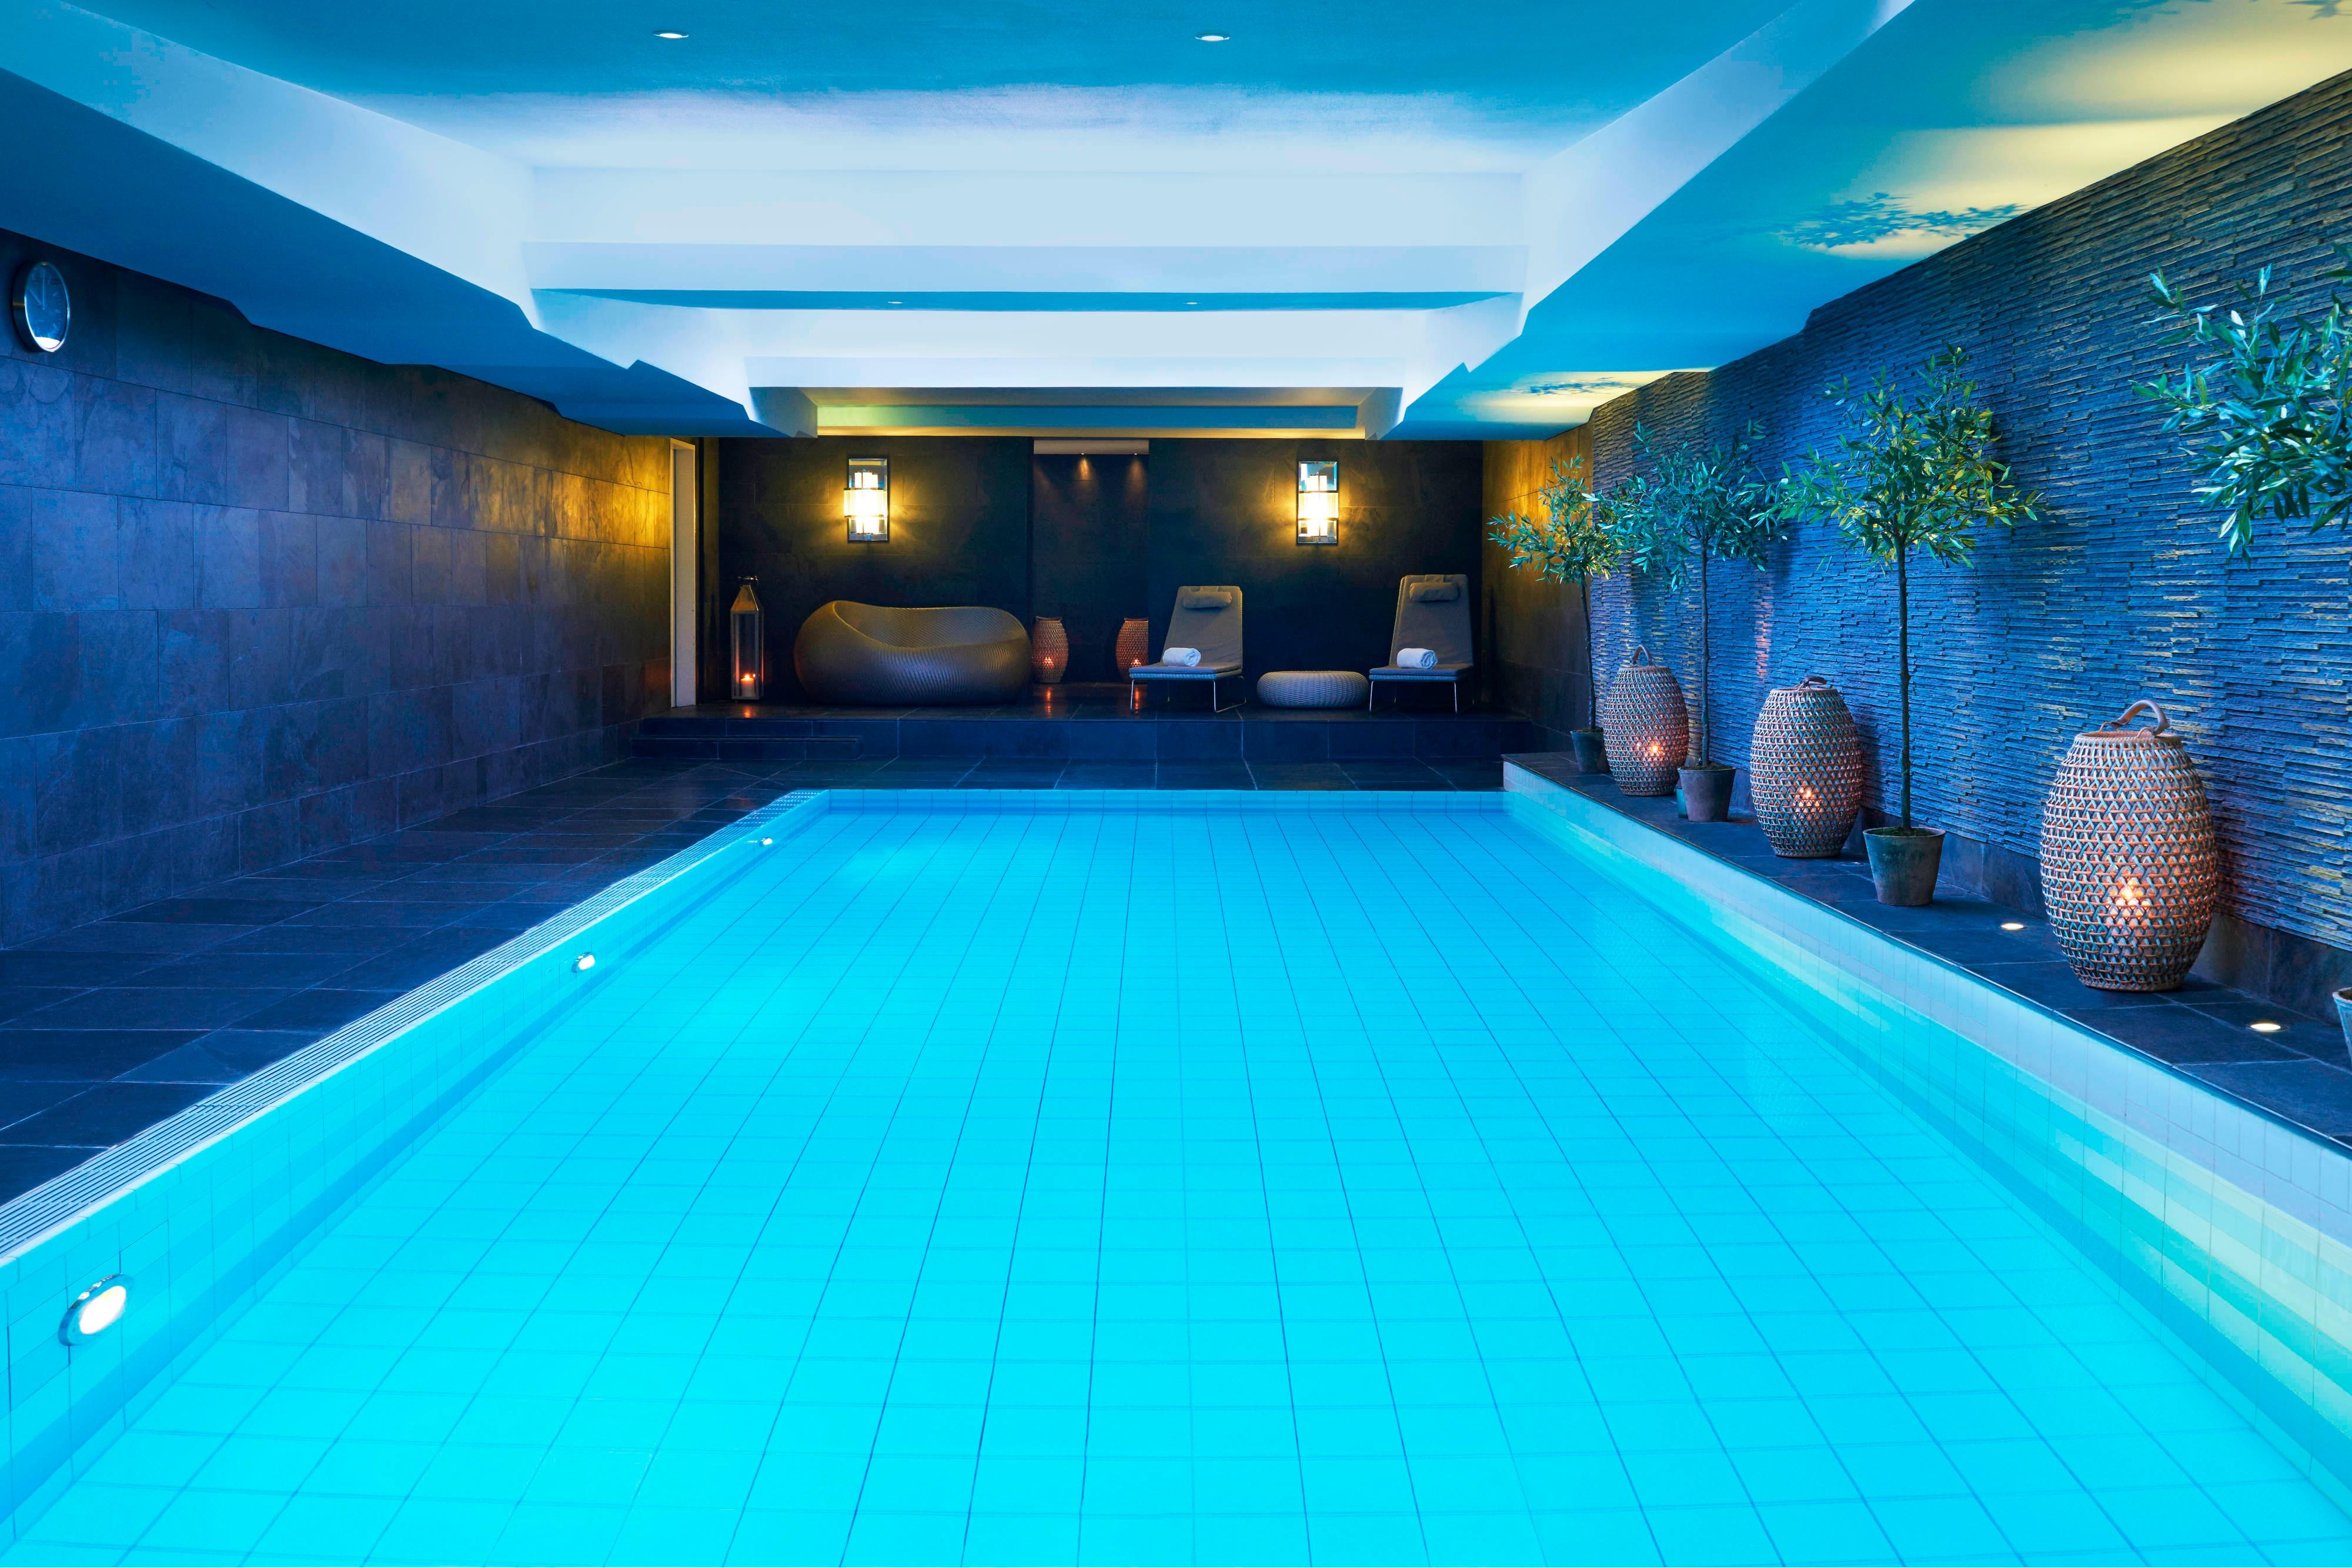 Hotel gym in warsaw recreation activities at the hotel - Swimming pool supplies lubbock tx ...